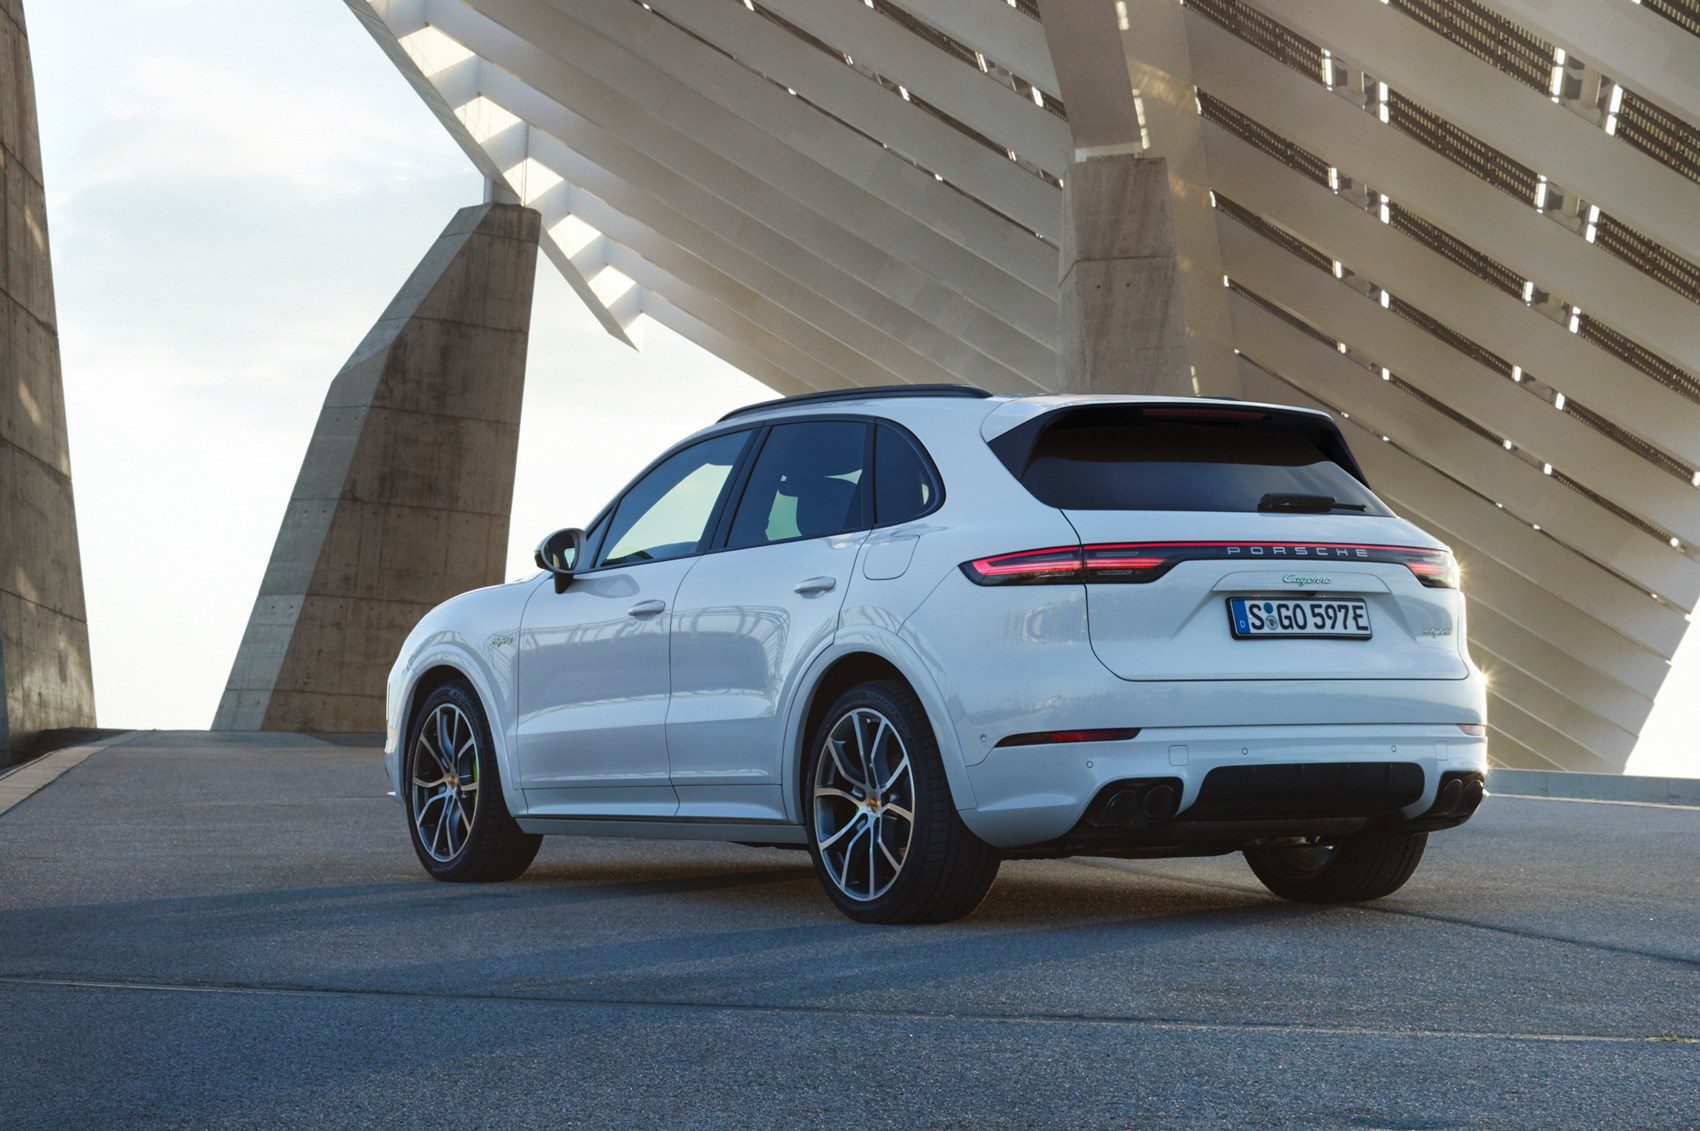 new 2018 porsche cayenne pics performance specs and price car magazine